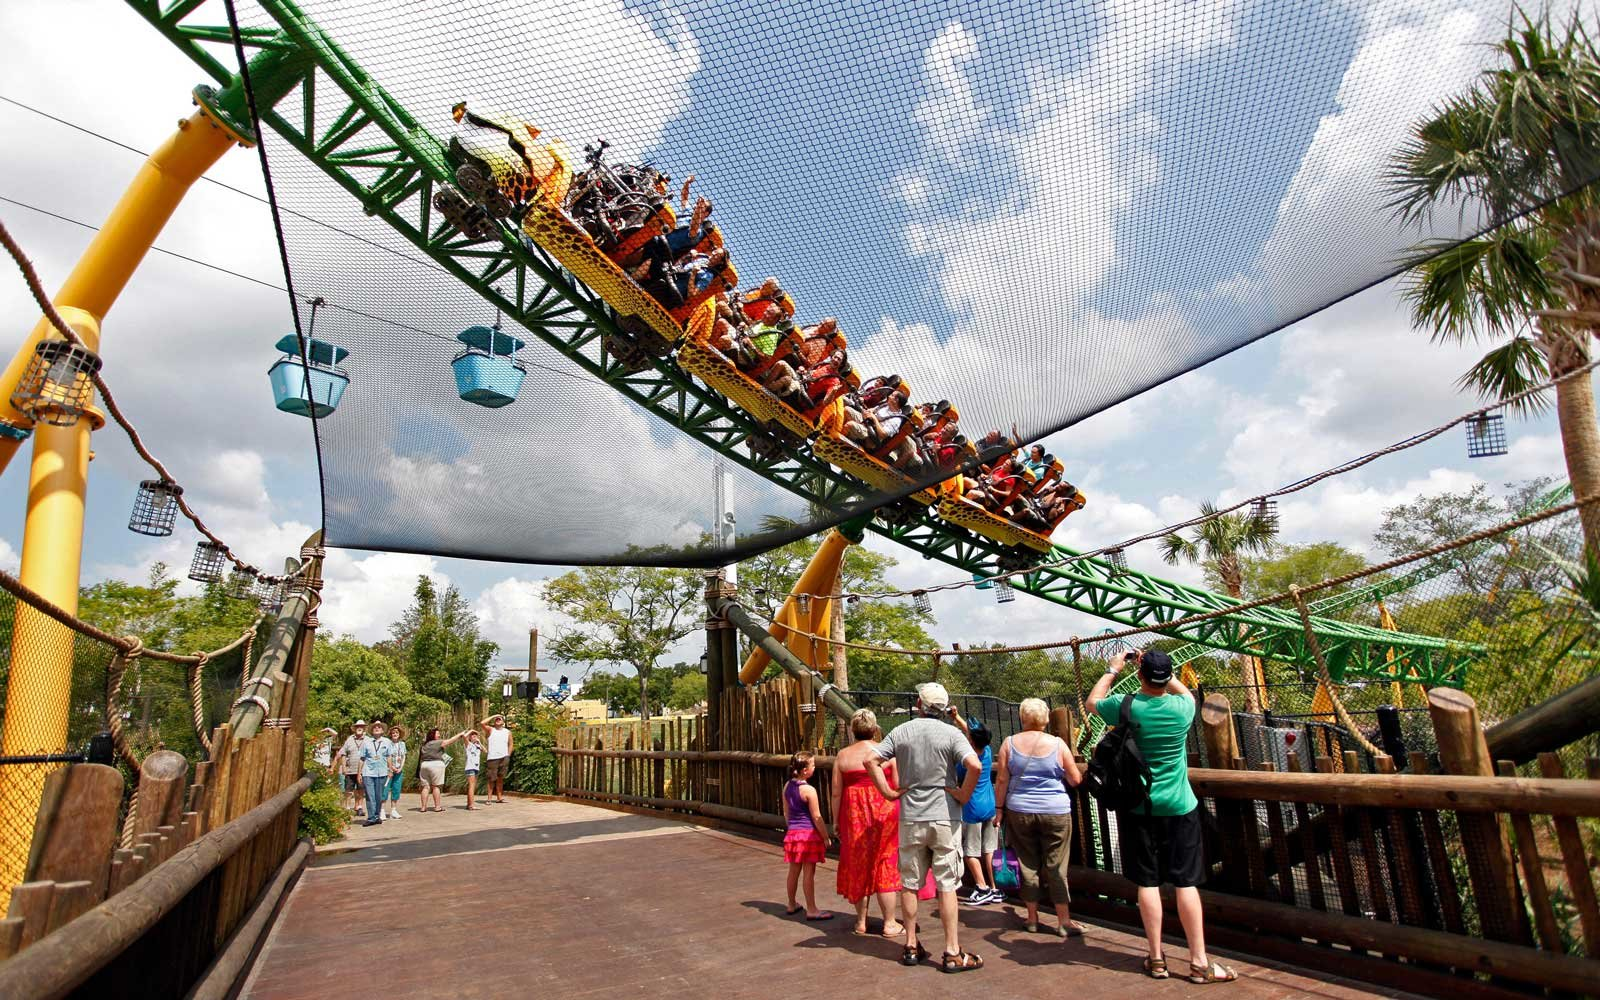 Virginia Beach Theme Parks